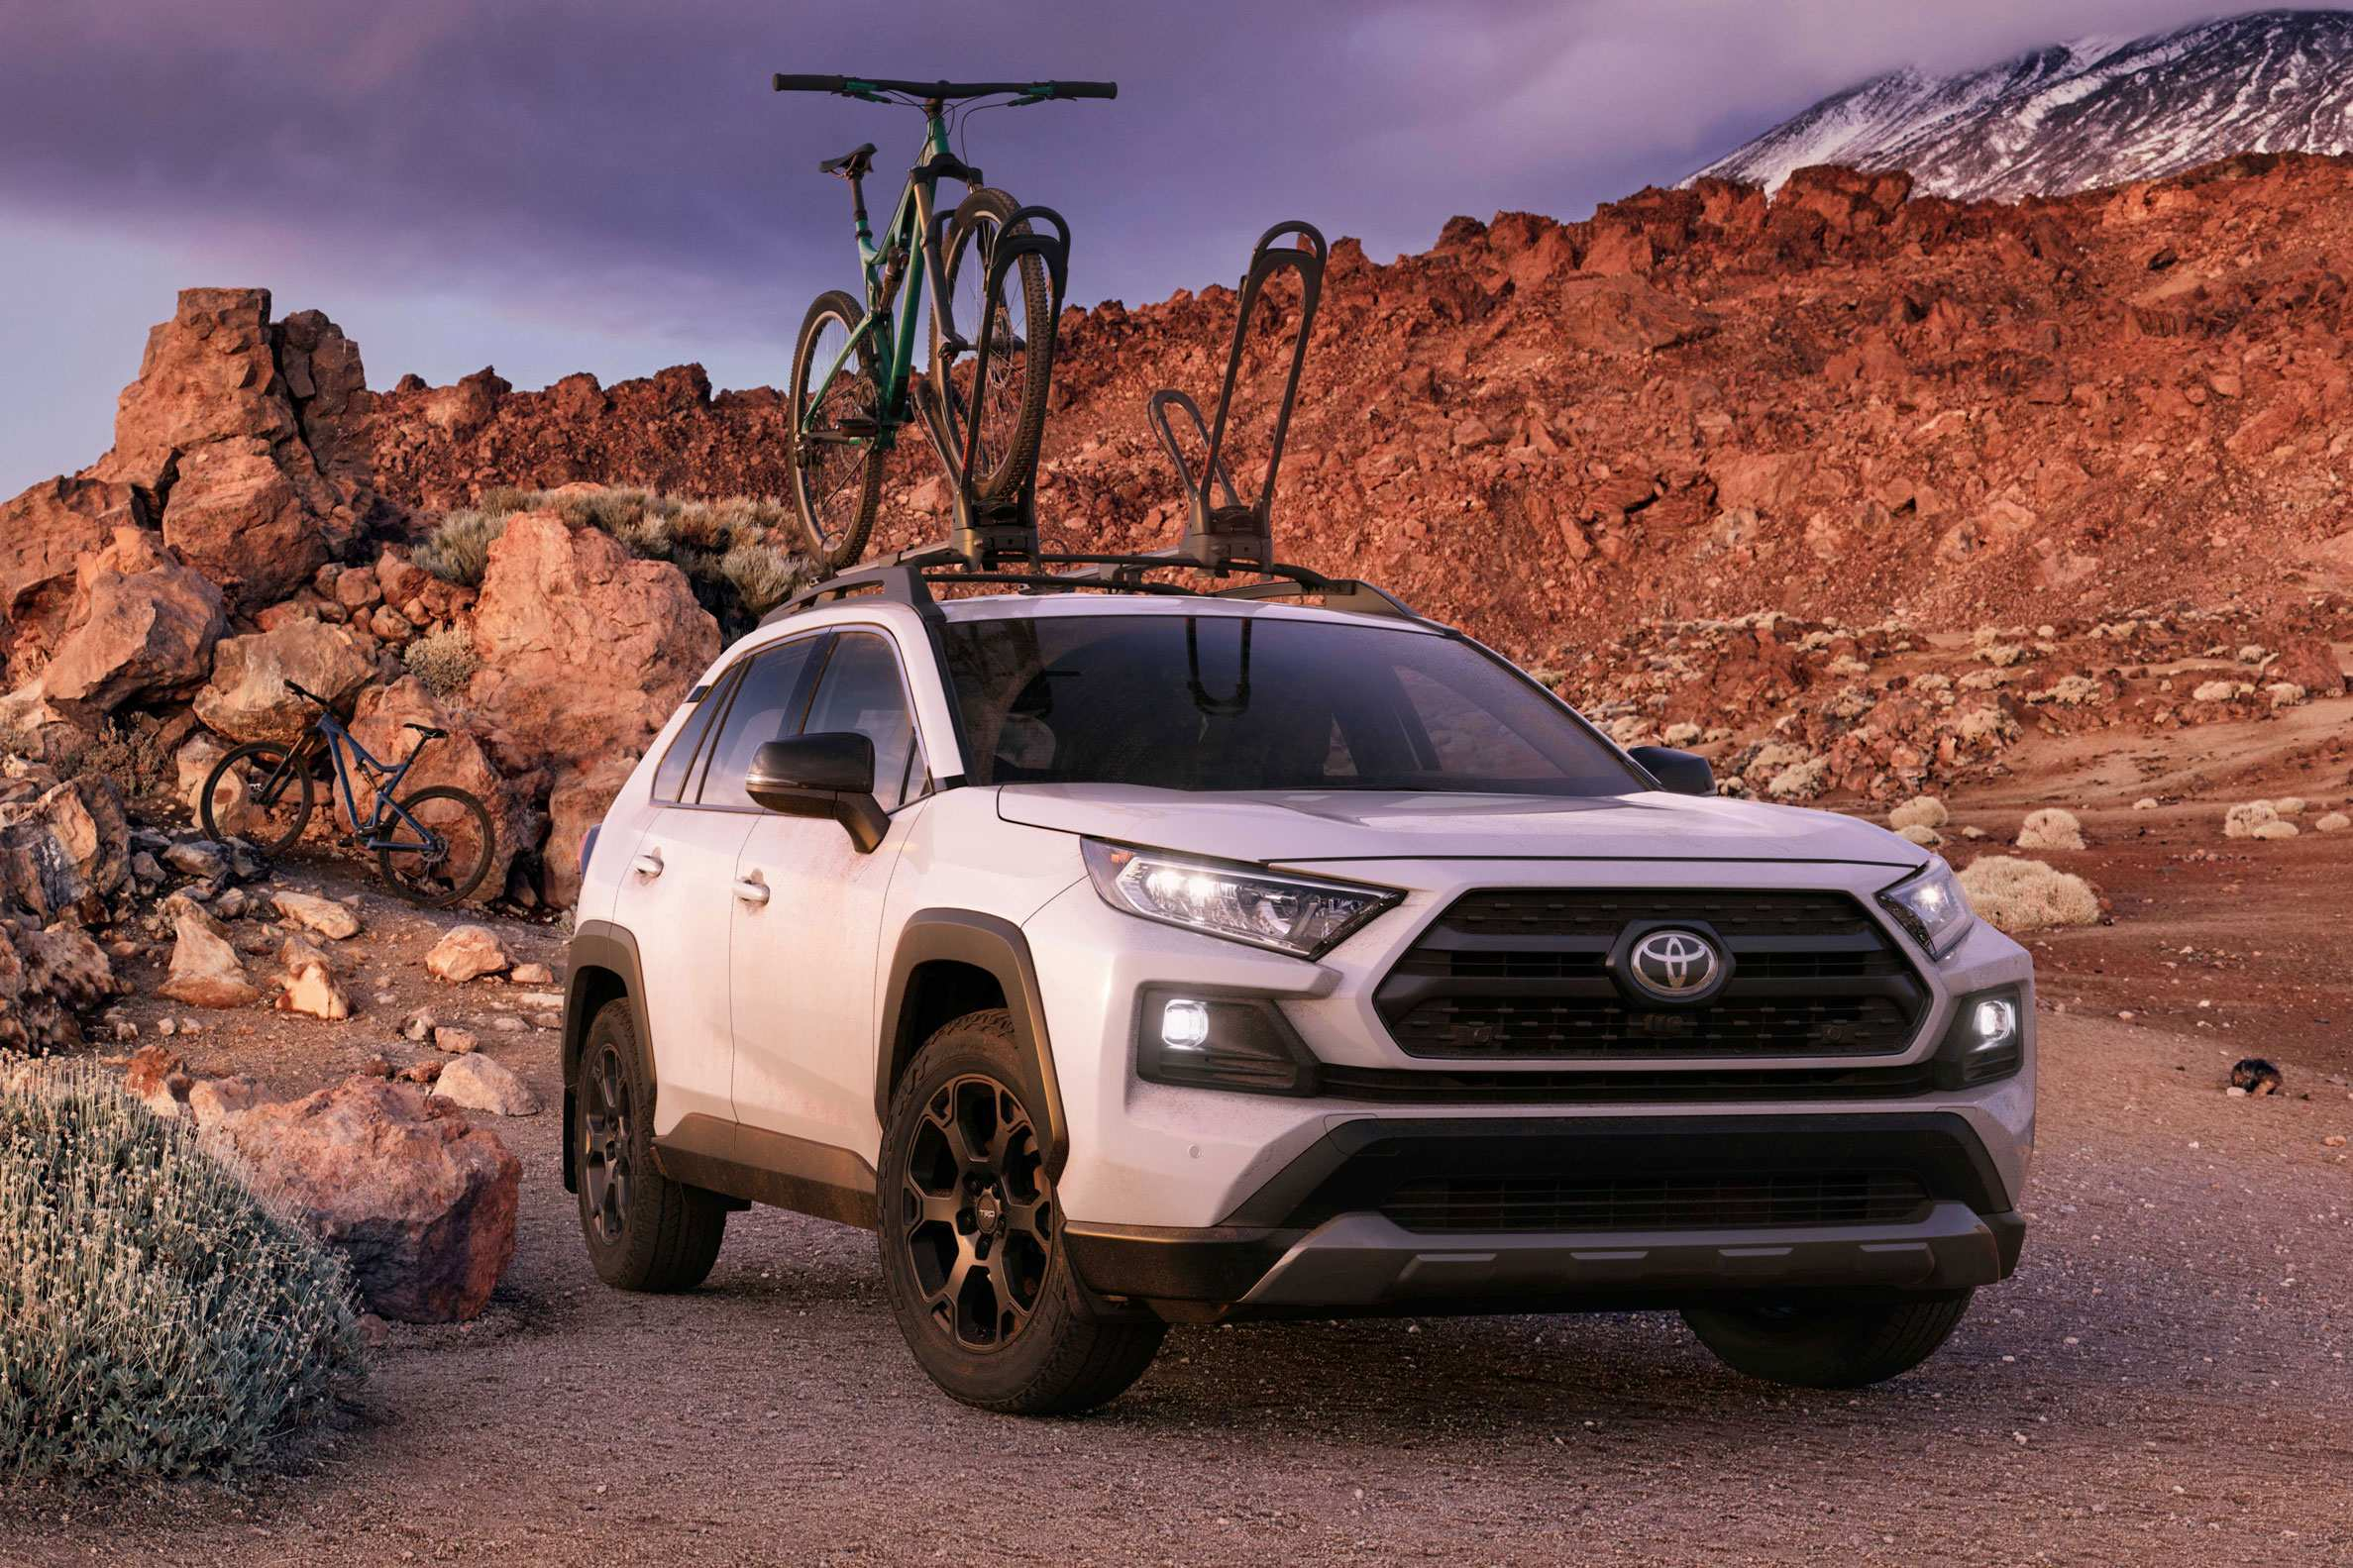 73 Concept of Toyota Rav4 2020 Wallpaper with Toyota Rav4 2020